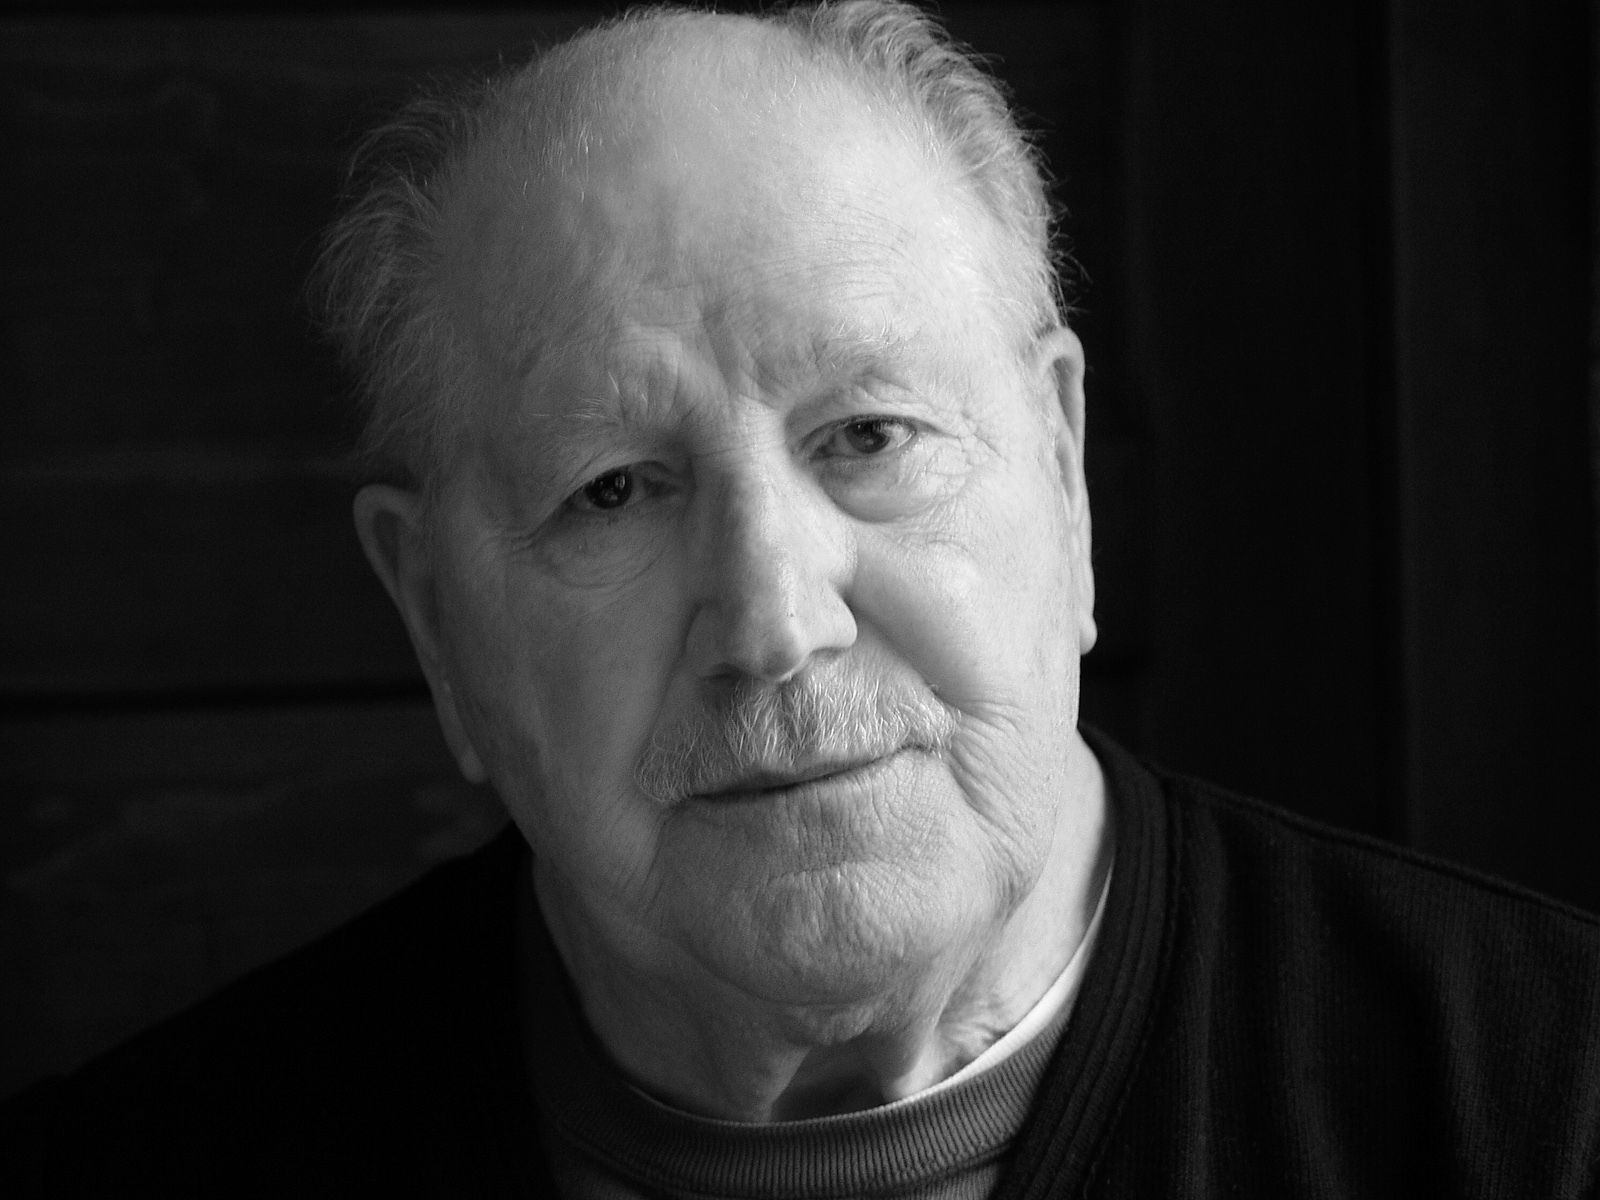 Harry Rhyner, Oshkosh, WI, 2001